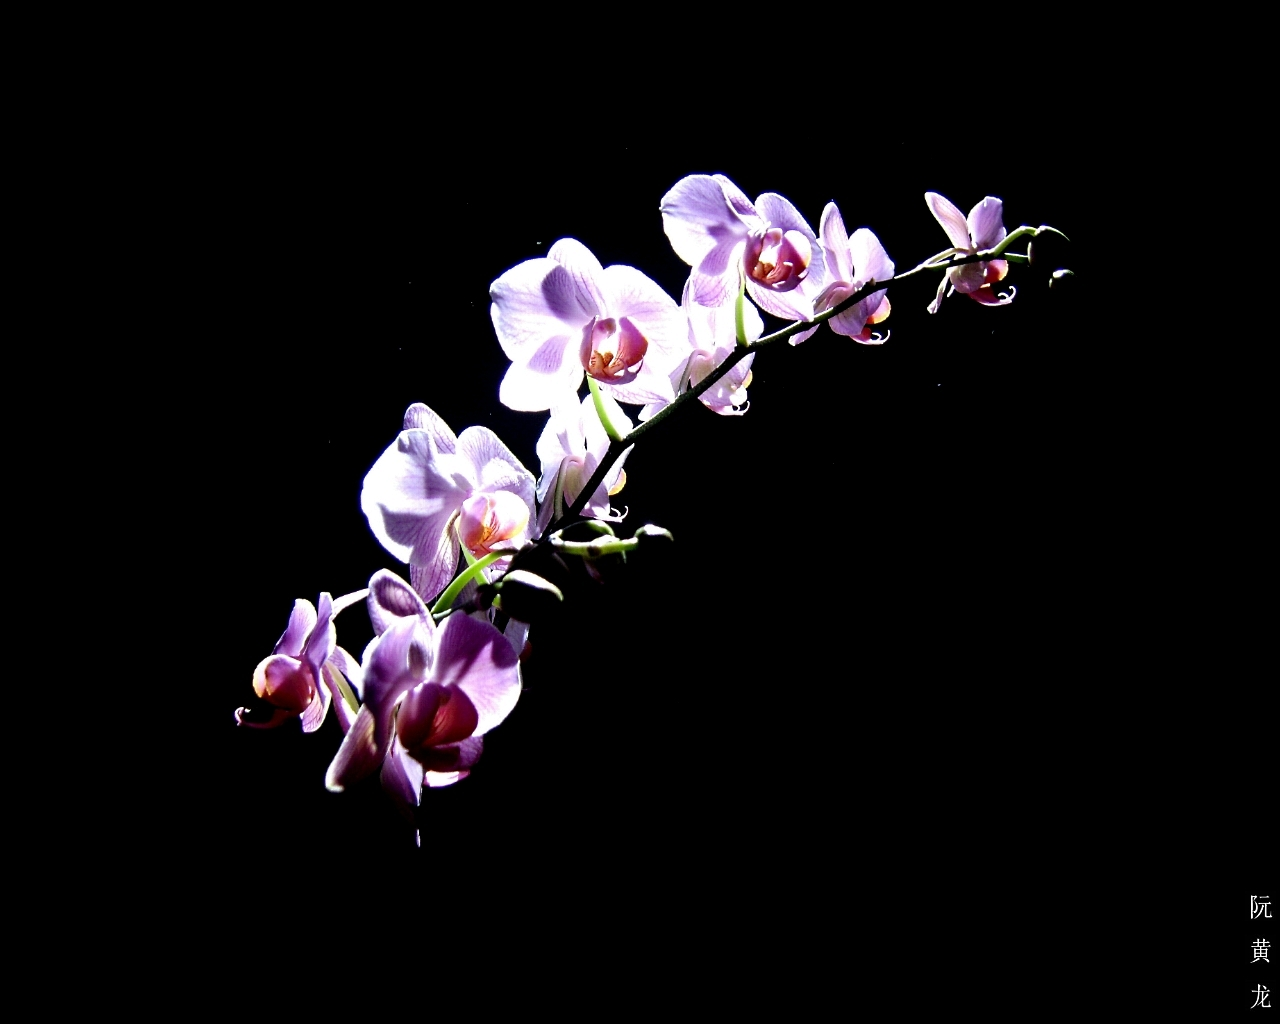 Purple Orchid Wallpaper Nice Purple Orchid Flower hd 1280x1024